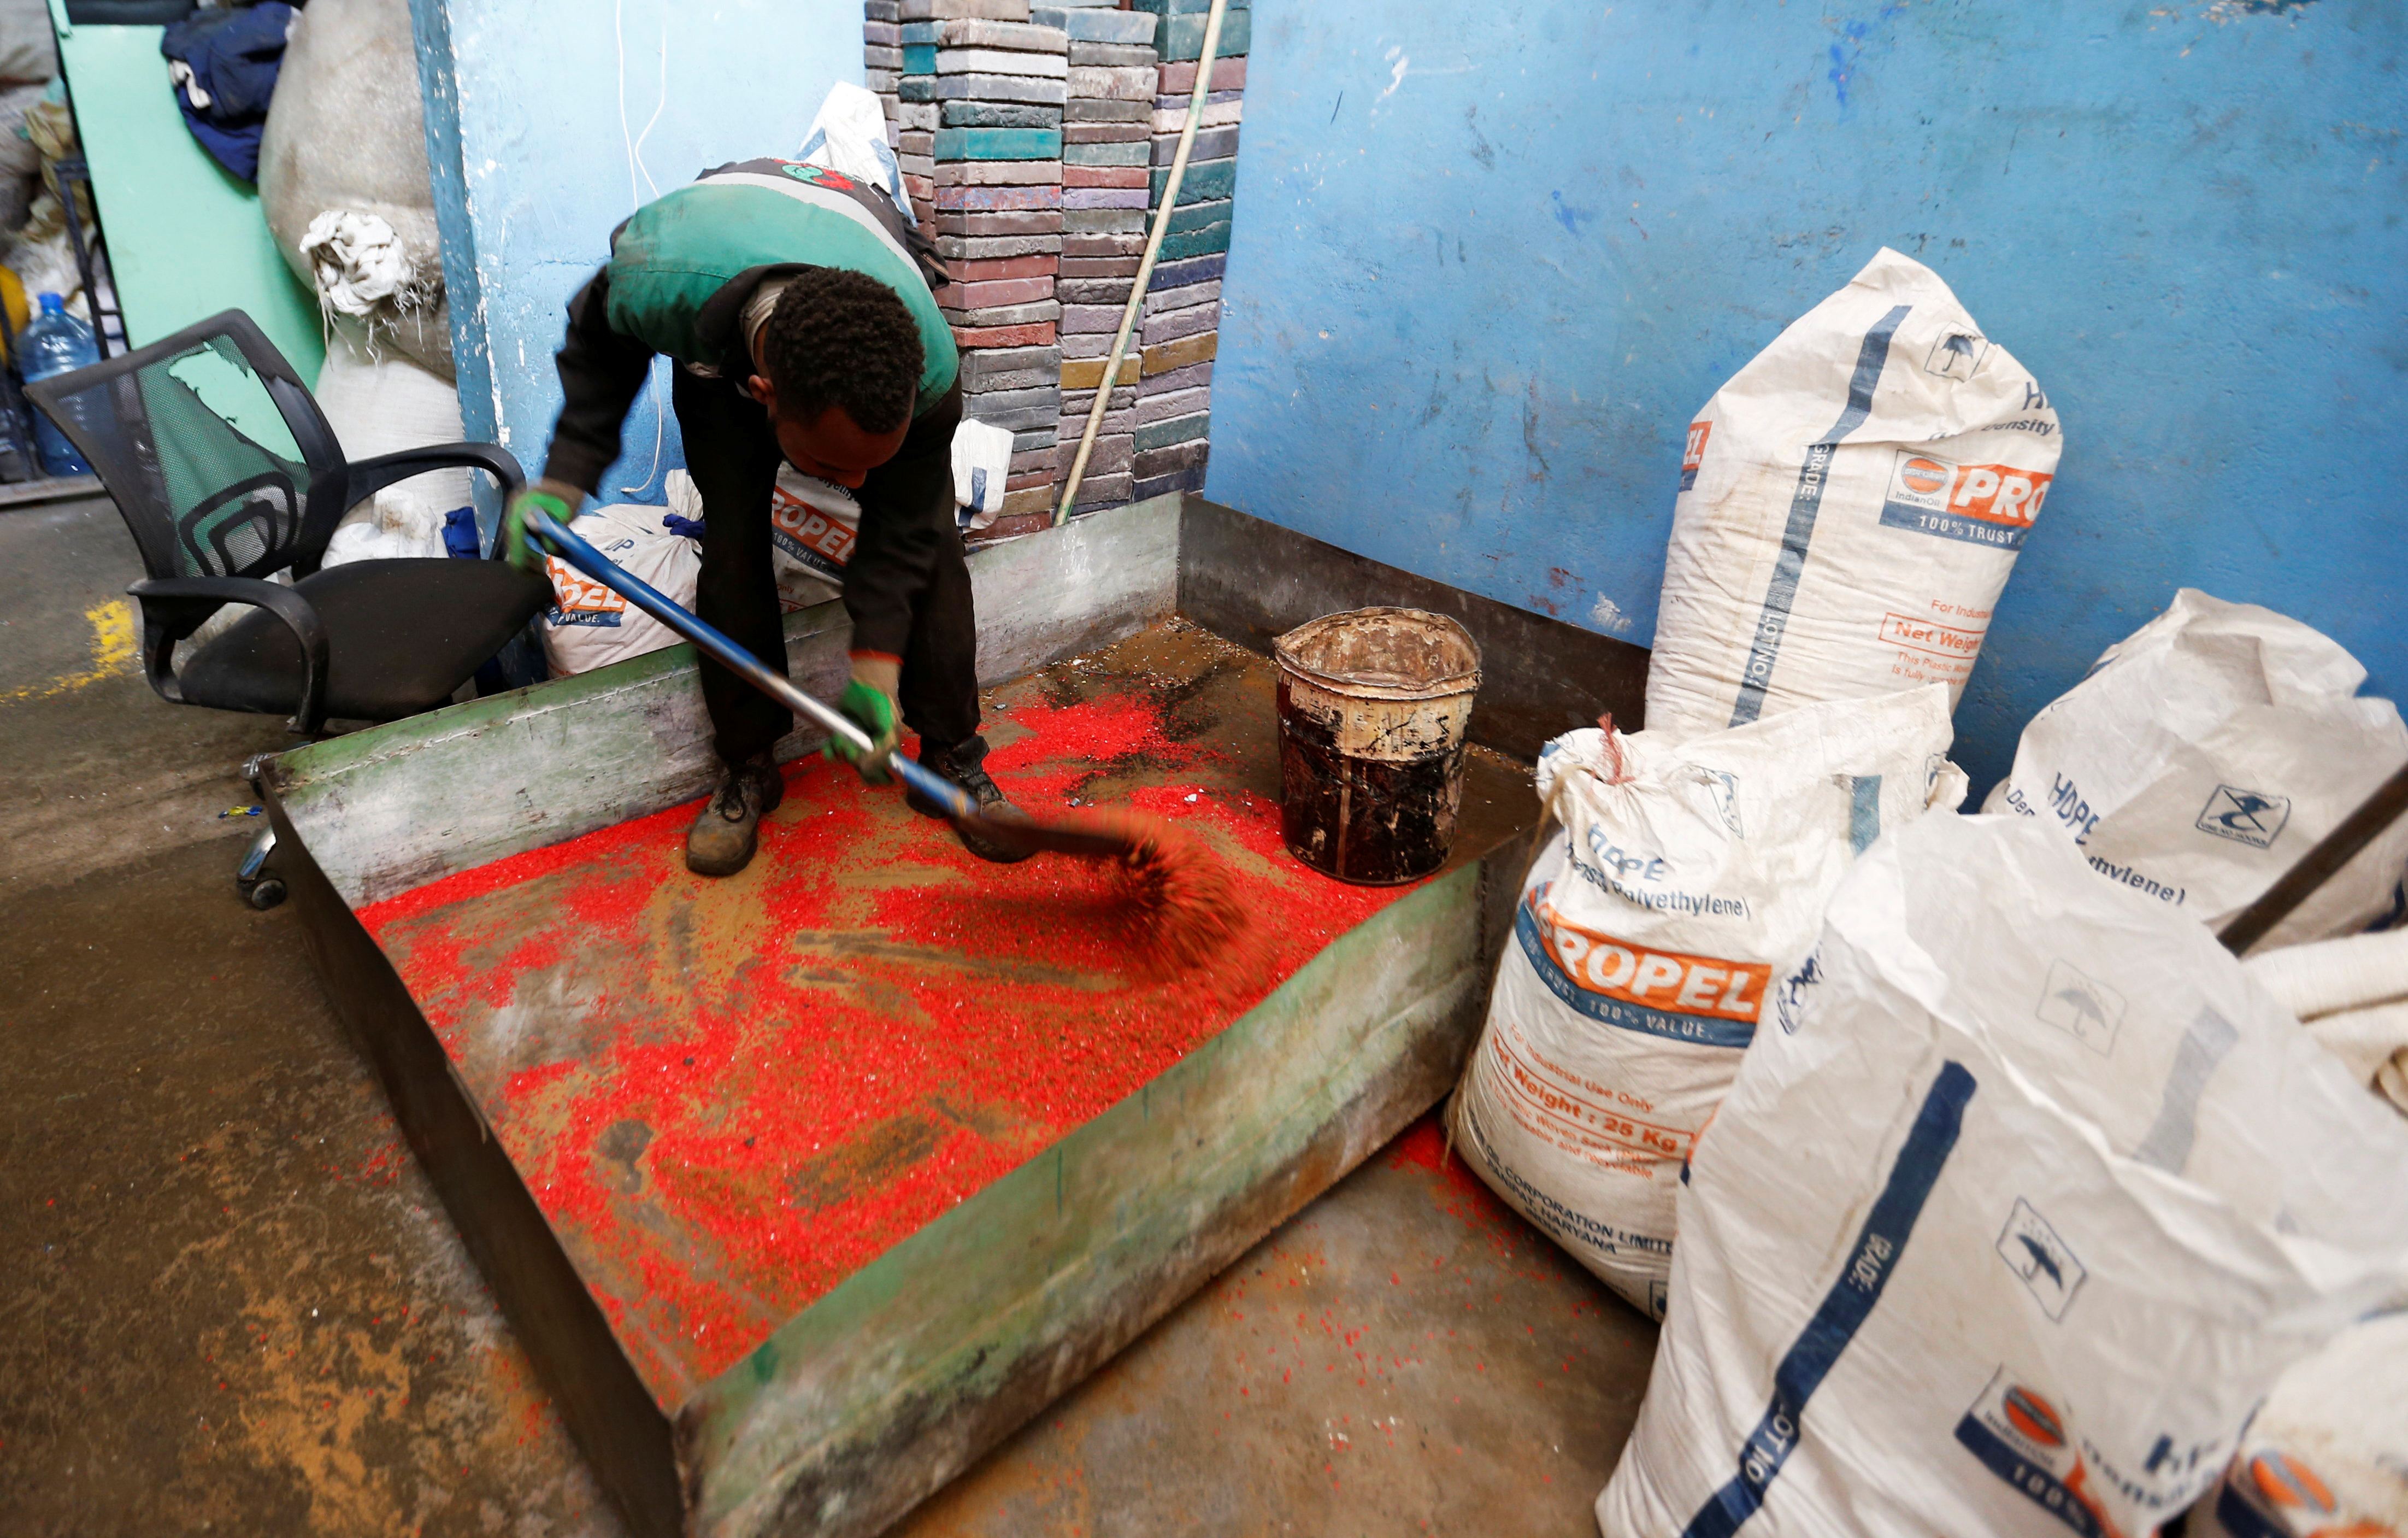 A worker at the Gjenge Makers, a social enterprise that recycles and up-cycles waste plastic into construction products such as paving bricks mixes chips made from recycled plastic in Nairobi, Kenya January 21, 2021. Picture taken January 21, 2021. REUTERS/Thomas Mukoya